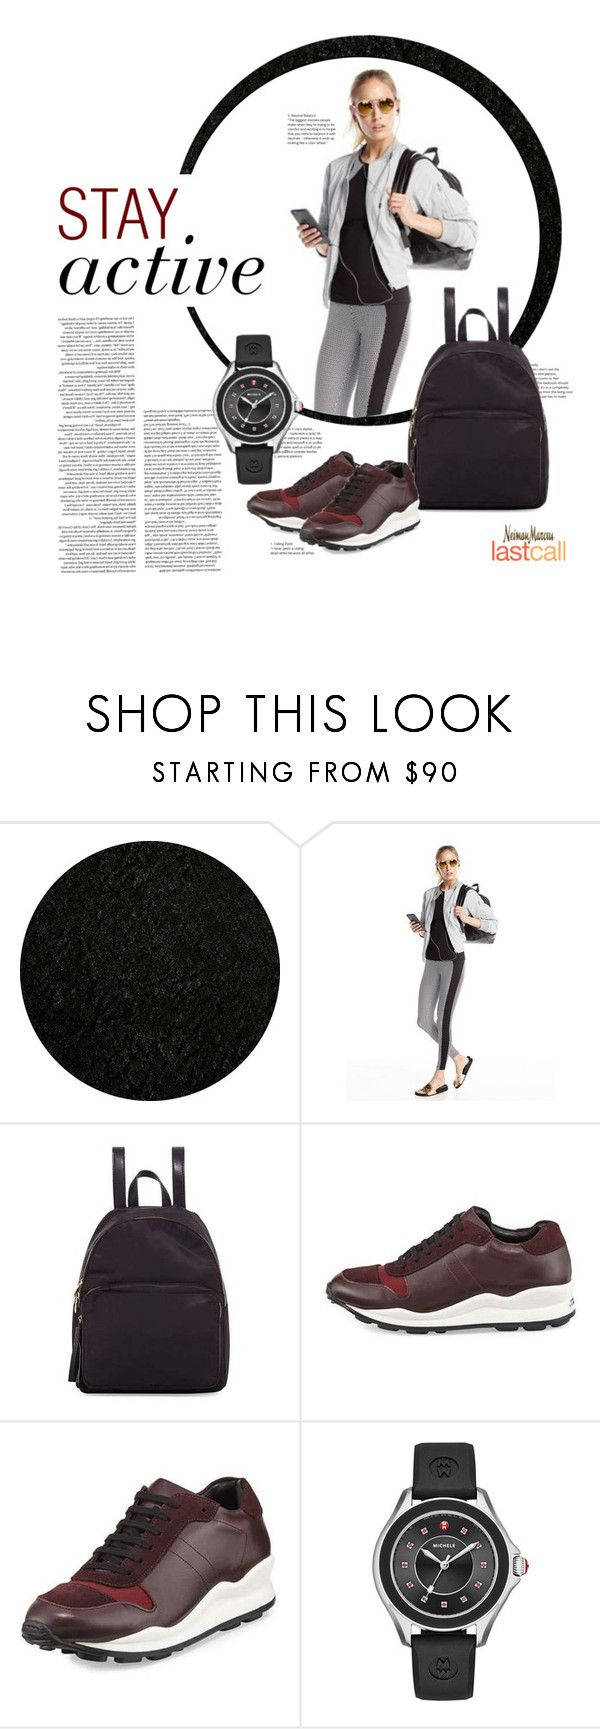 """""""Stay Active"""" by lastcall ❤ liked on Polyvore featuring Momeni, Koral Activewear, Neiman Marcus, Opening Ceremony, Michele and Lydell NYC"""